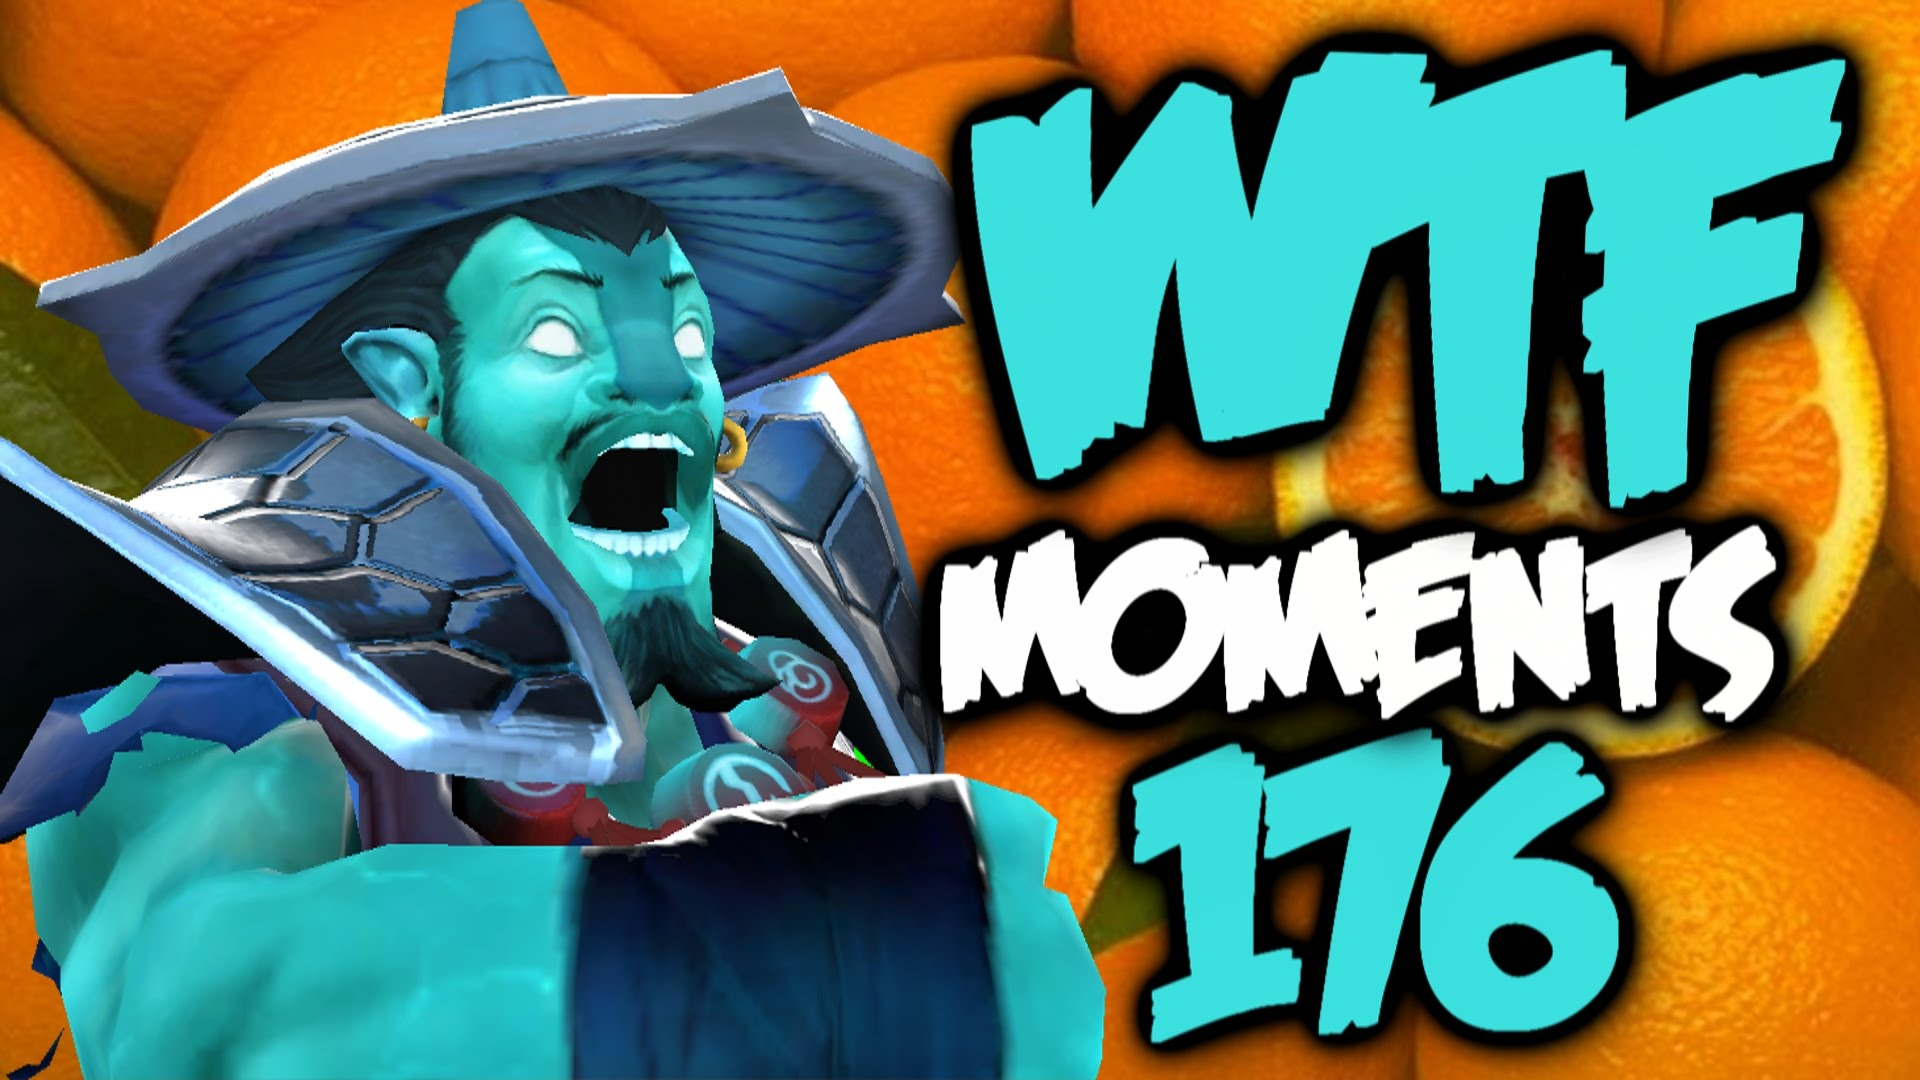 Dota 2 WTF Moments 176 - ufifa16coins.com